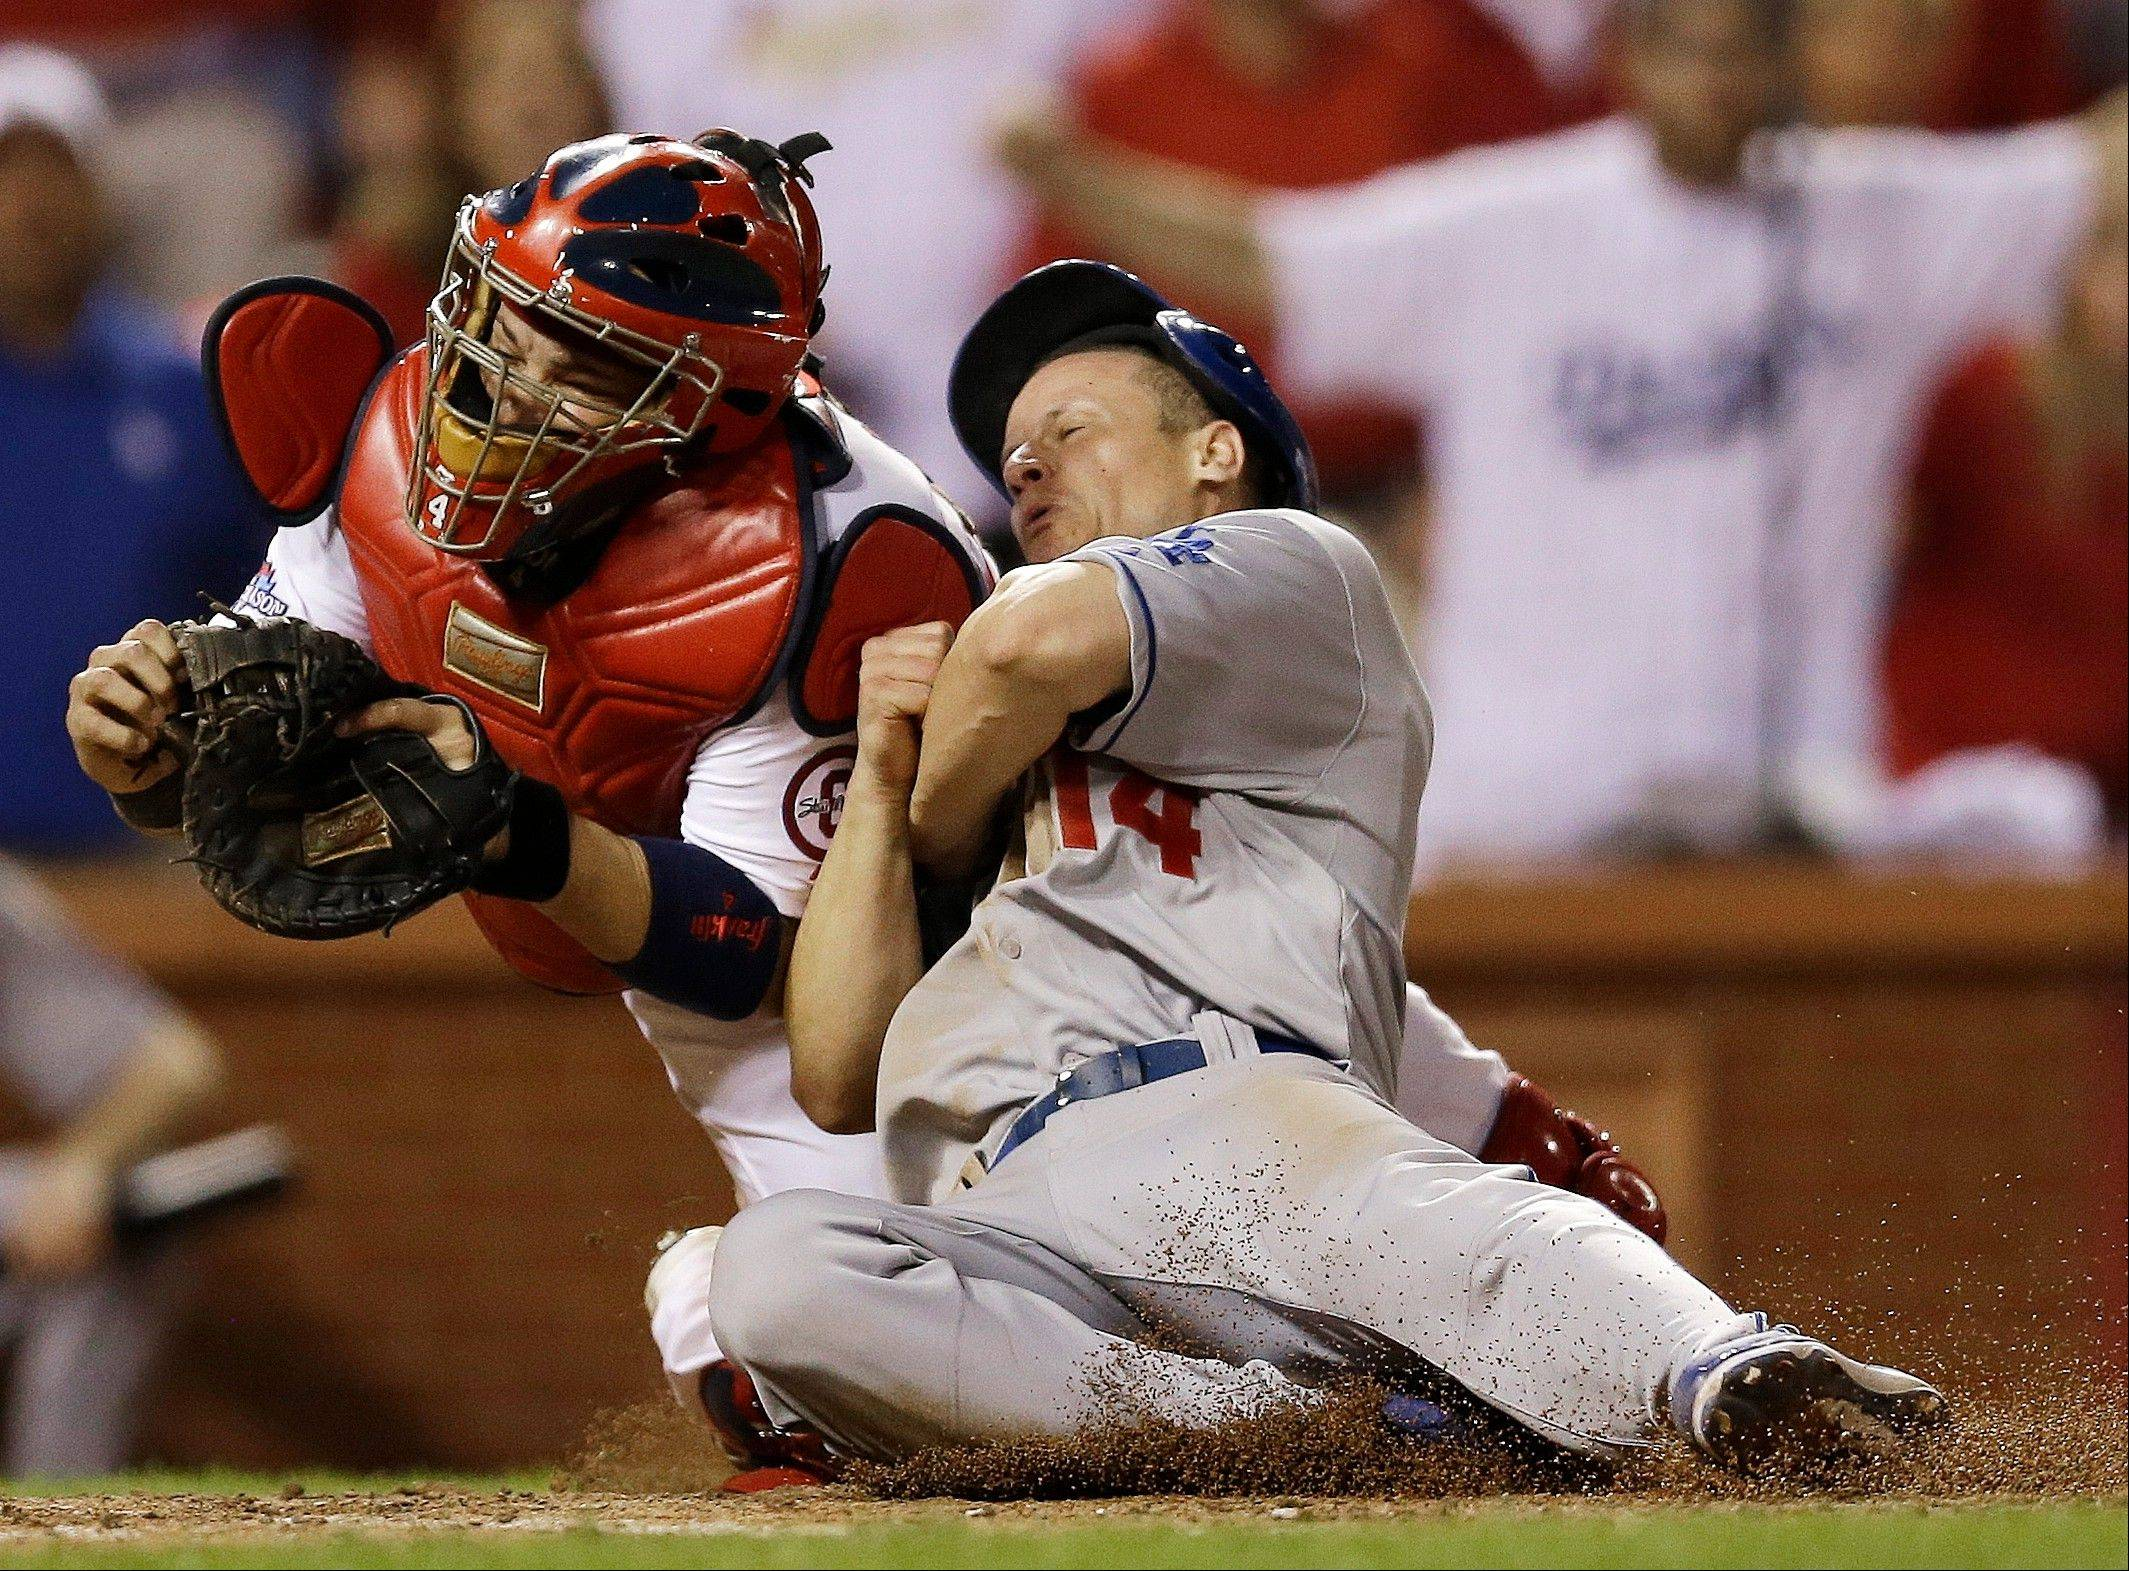 The Dodgers' Mark Ellis barrels into Cardinals catcher Yadier Molina in the 10th inning.